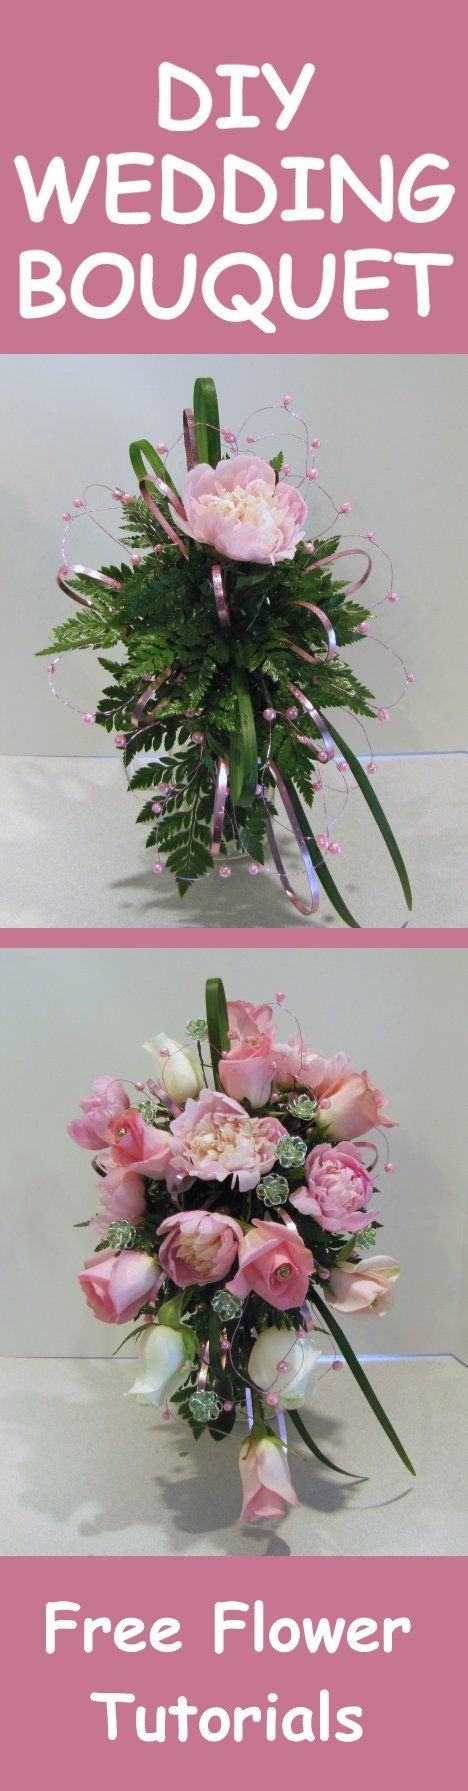 Peony wedding bouquet tutorial easy diy wedding flowers learn how buy wholesale fresh flowers and discount florist supplies peony wedding bouquet tutorial easy izmirmasajfo